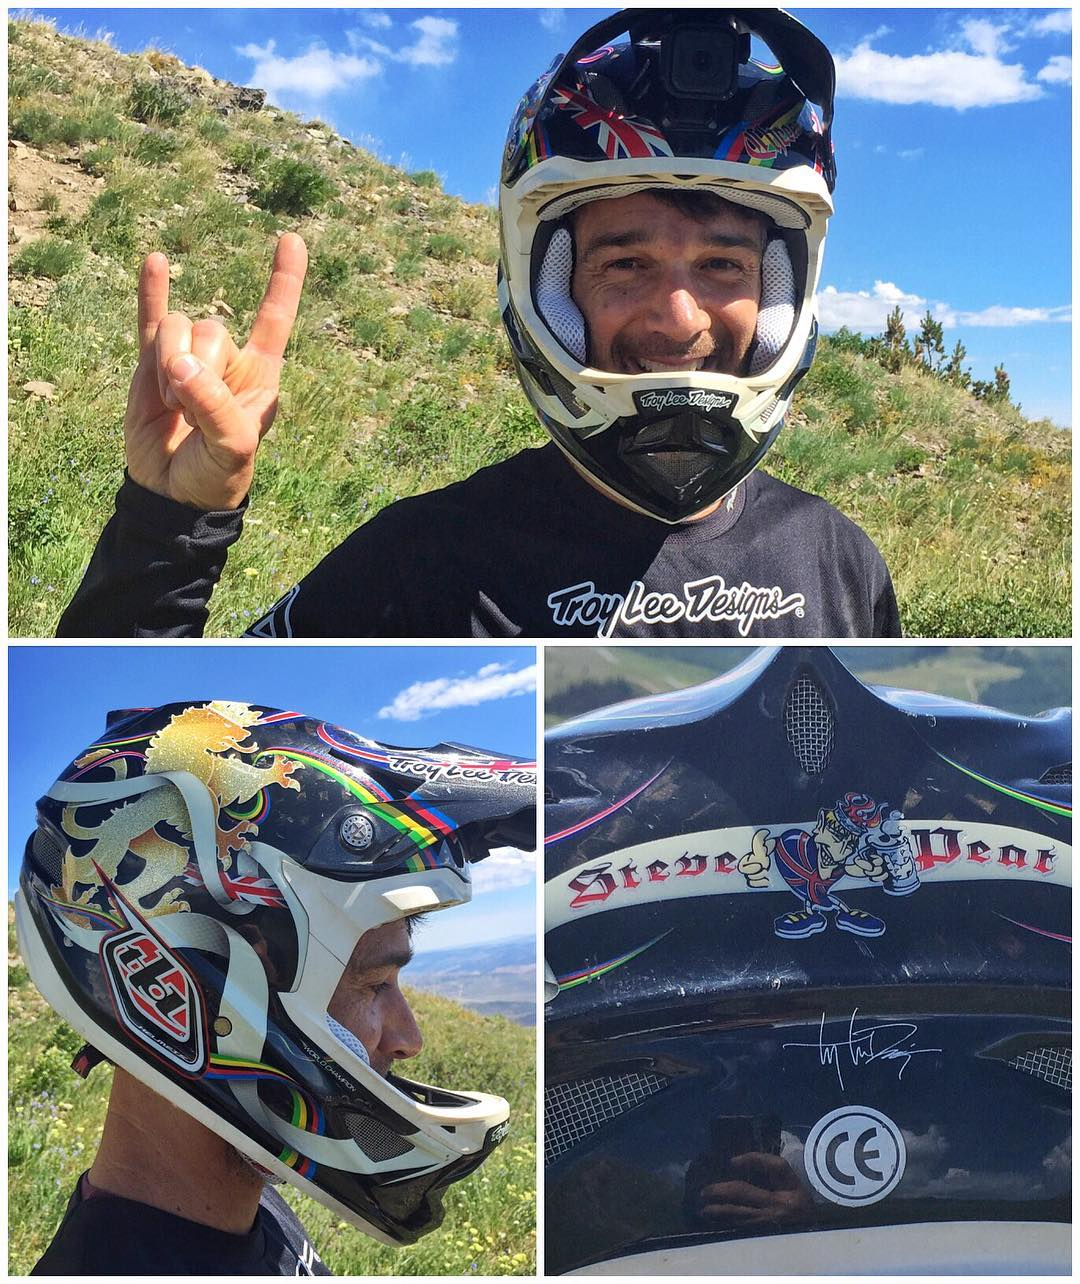 I haven't ridden with my buddy Noah Brandon for a while, so it was really cool to see him show up today with this rad limited-edition @StevePeat helmet from @TroyLeeDesigns. Kind of a funny coincidence too, considering some things that are happening...